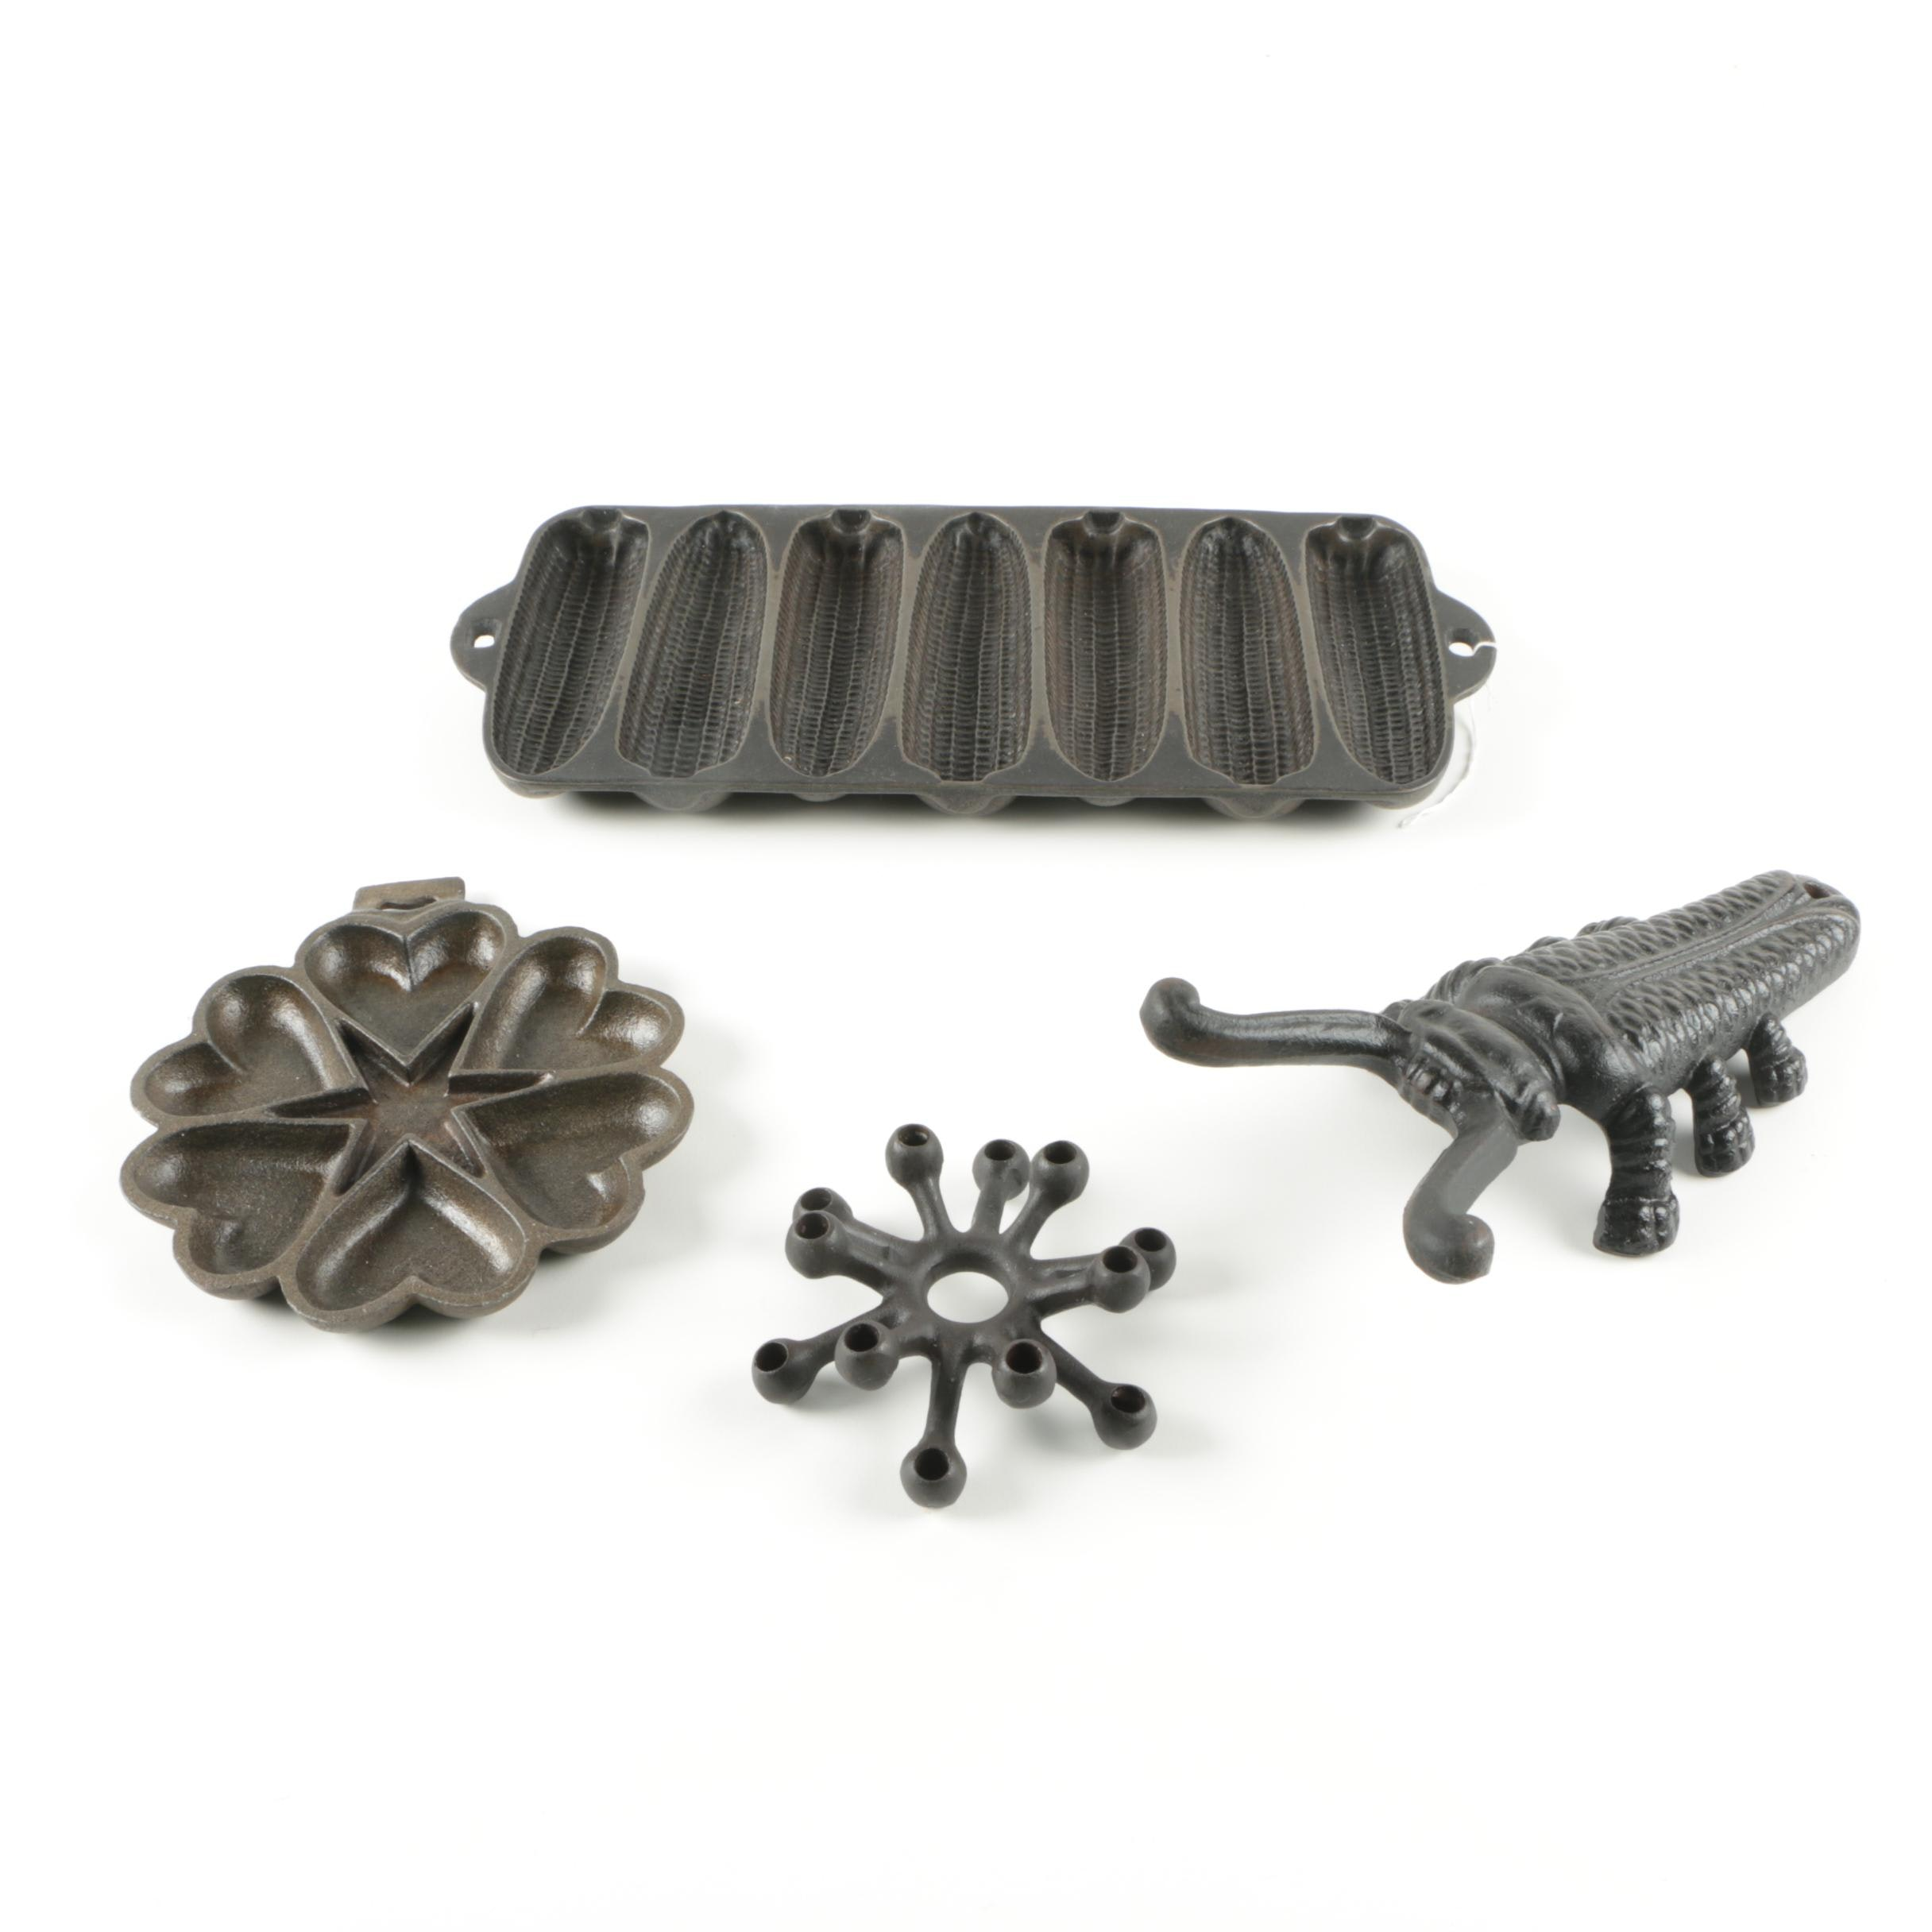 Cast Iron Bakeware and Decor